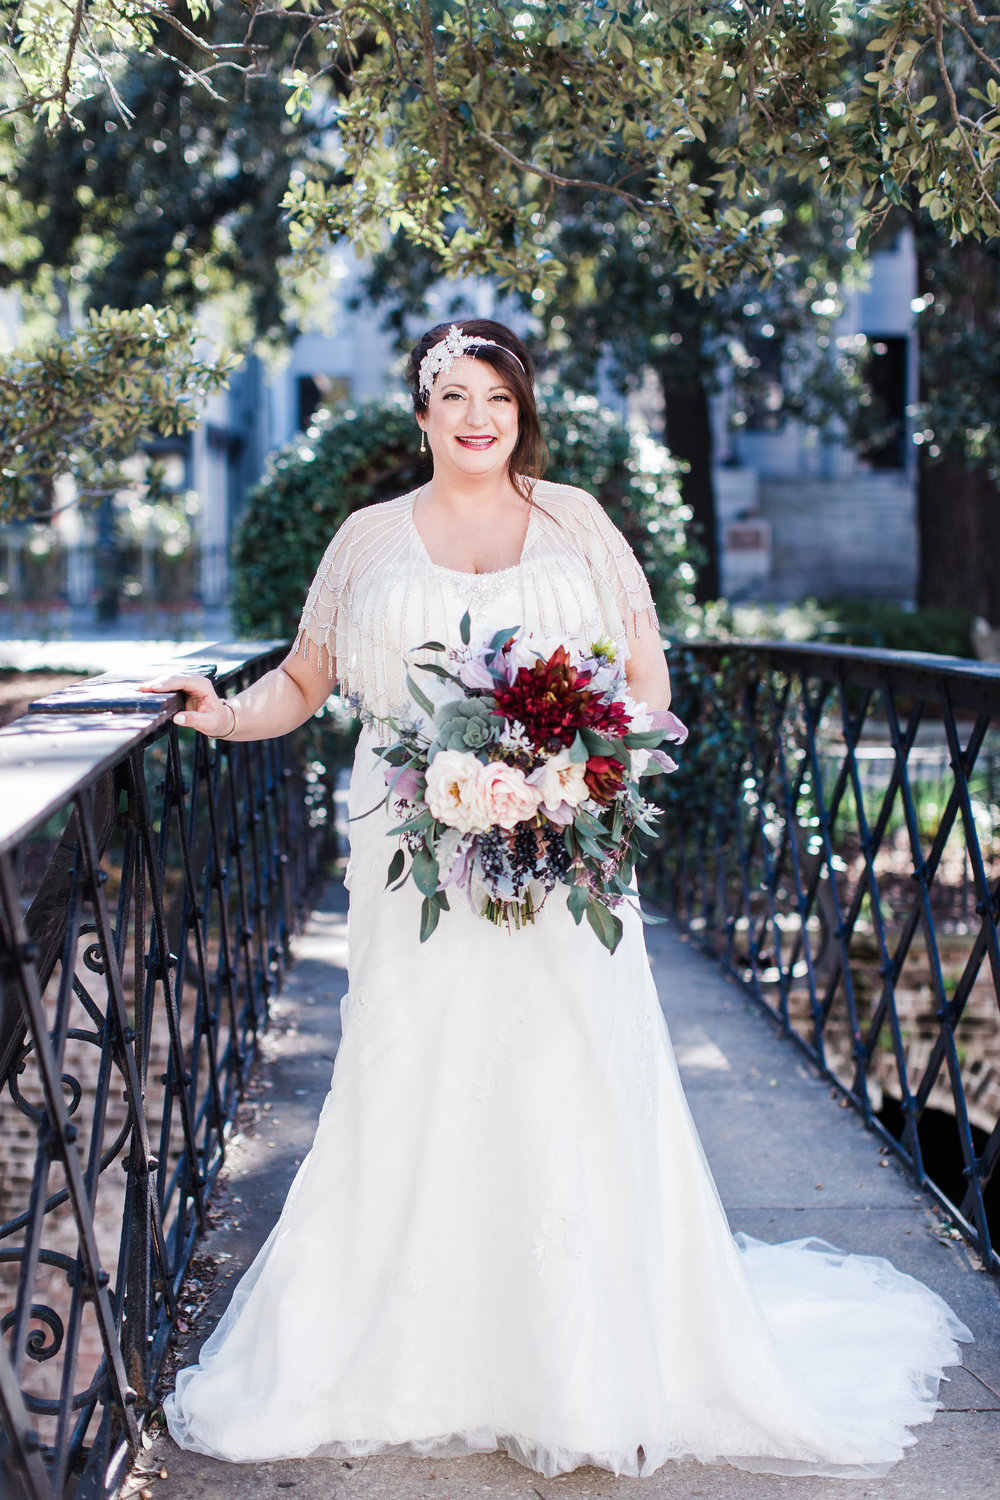 apt-b-photography-kristy-rob-wormsloe-elopment-savannah-wedding-photographer-savannah-elopement-wormsloe-wedding-historic-savannah-13.jpg